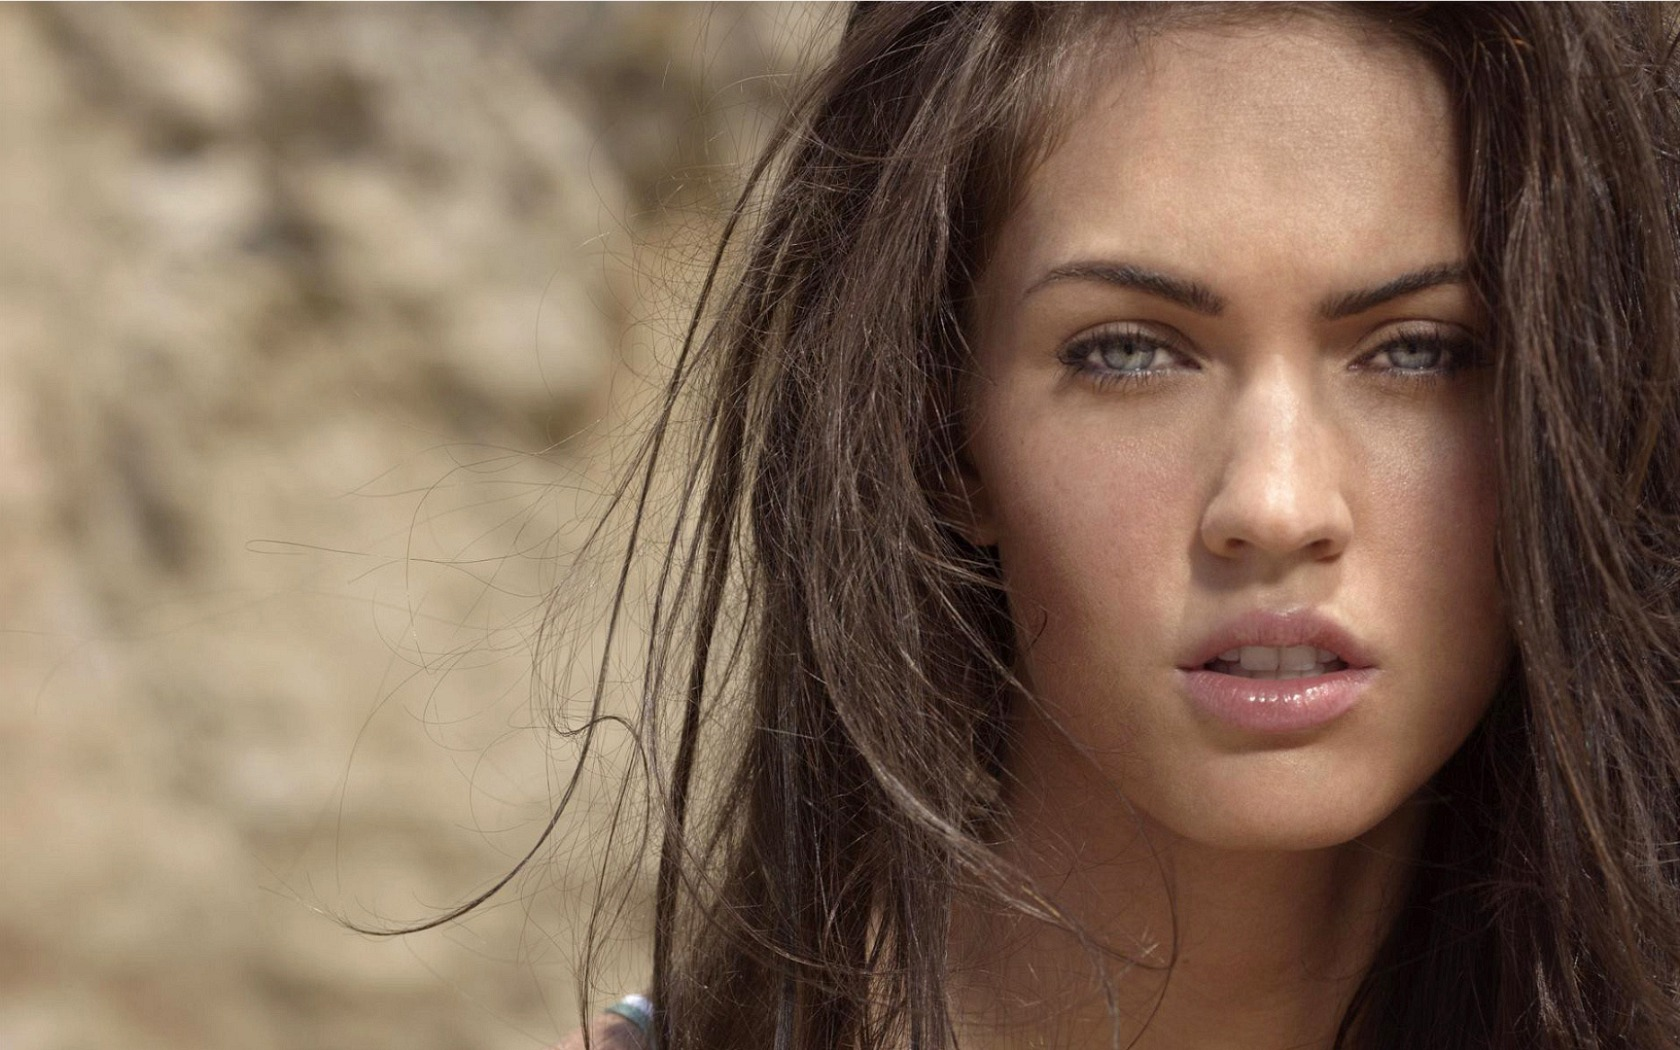 Megan Fox HD Wallpaper 1680x1050 1680x1050